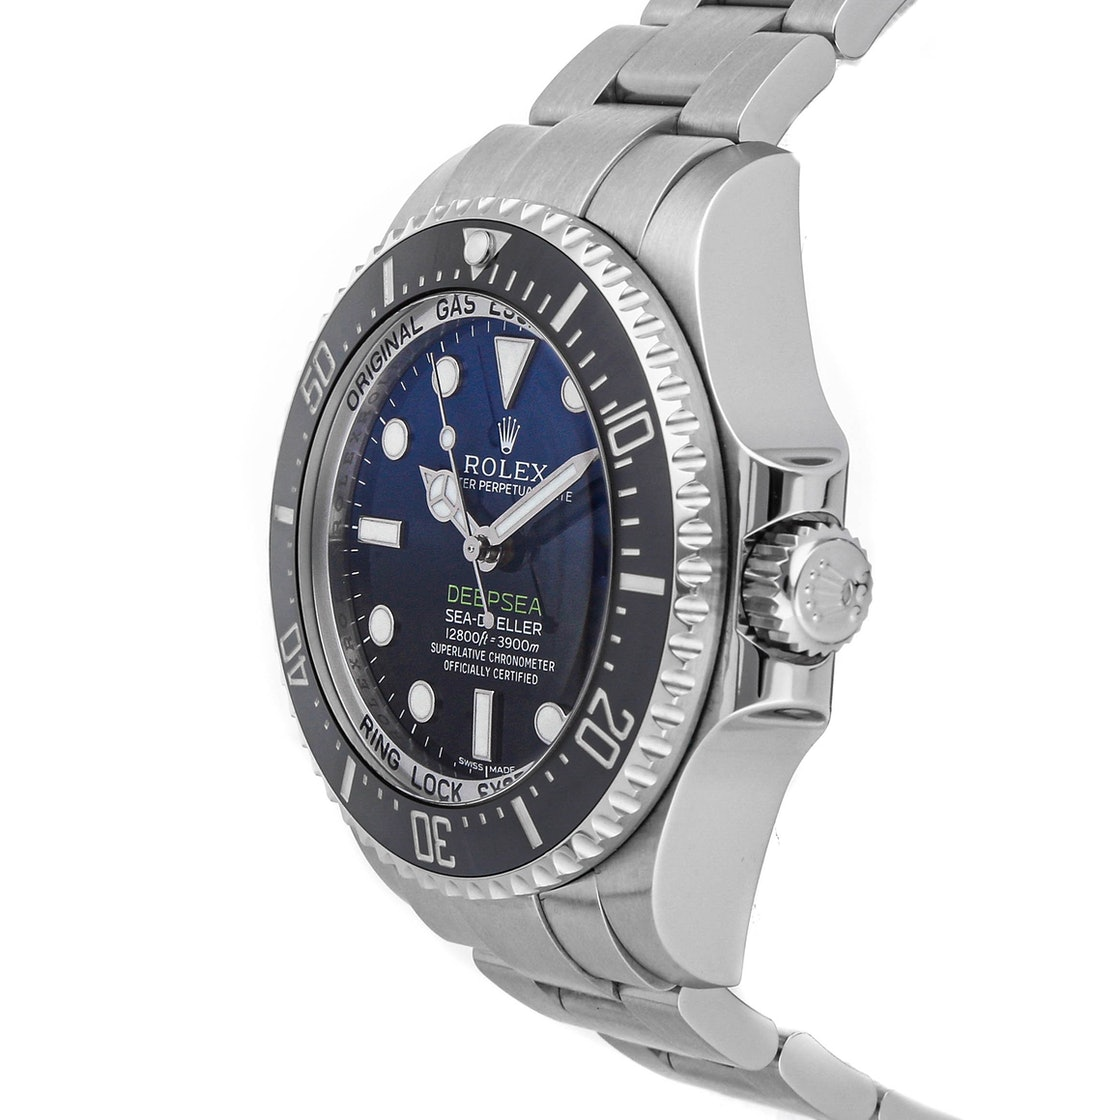 "Rolex Deepsea Sea-Dweller ""Deep Blue"" 116660"